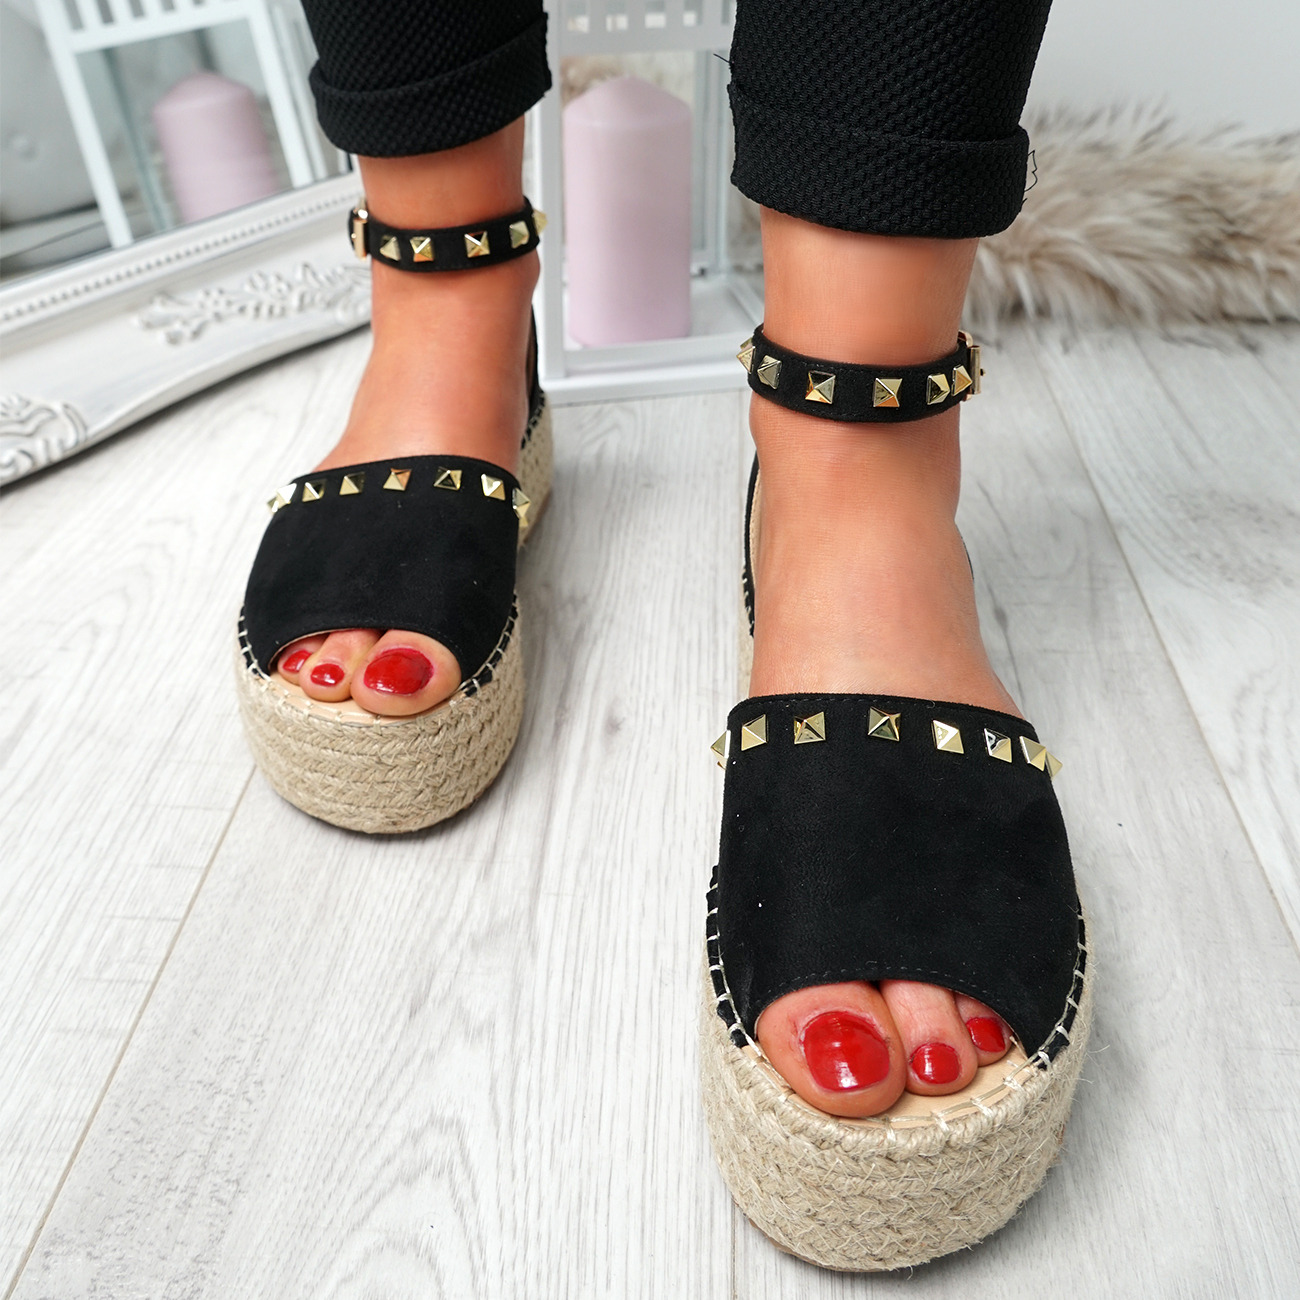 WOMENS-LADIES-ROCK-STUDS-ESPADRILLE-FLATFORM-PLATFORM-SANDALS-CASUAL-SHOES-SIZE thumbnail 12